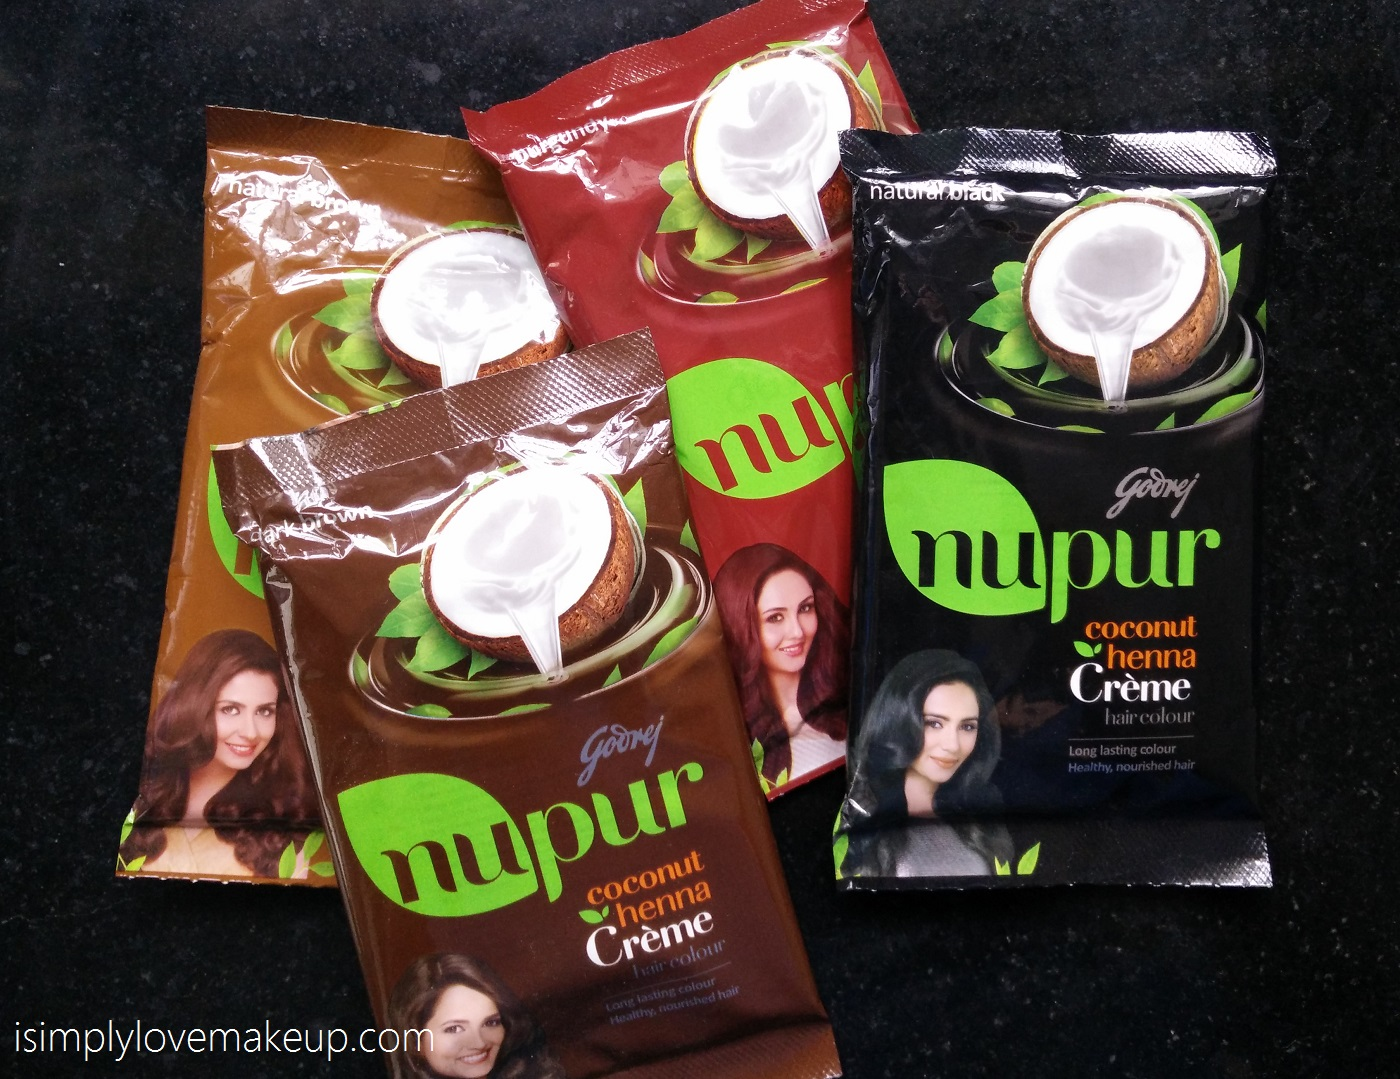 Nupur Henna: Its Not Just Hair Color... Its A State Of Mind